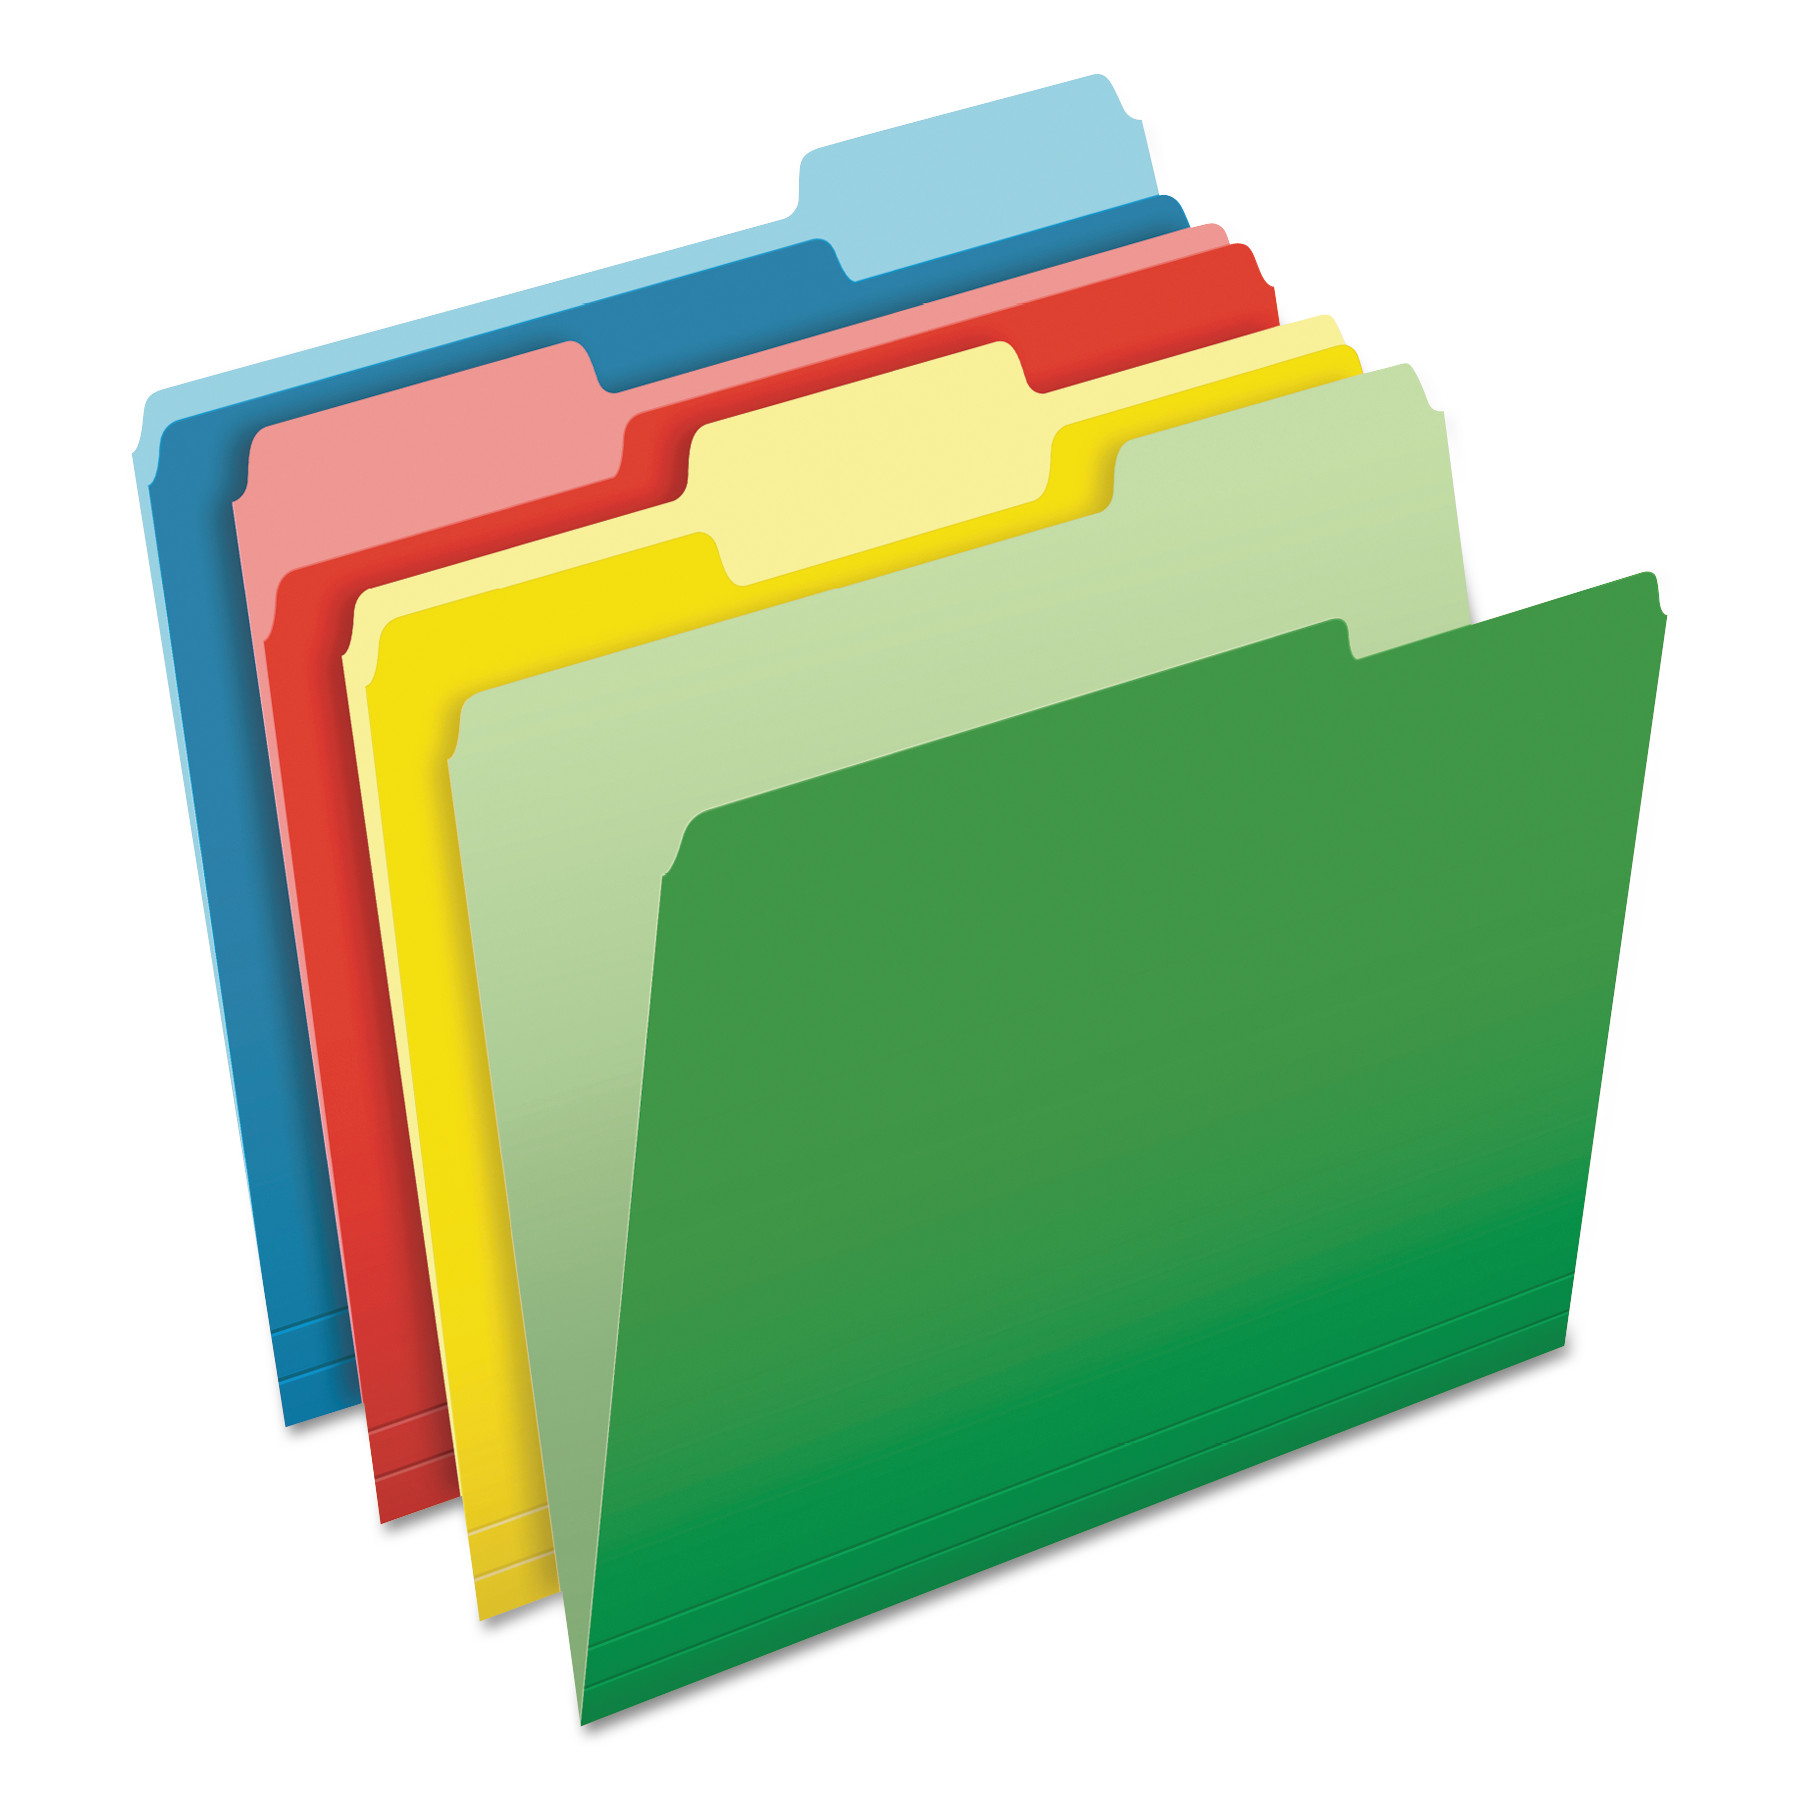 Pendaflex CutLess File Folders, 1/3 Cut Top Tab, Letter, Assorted, 100/Box -PFX48440